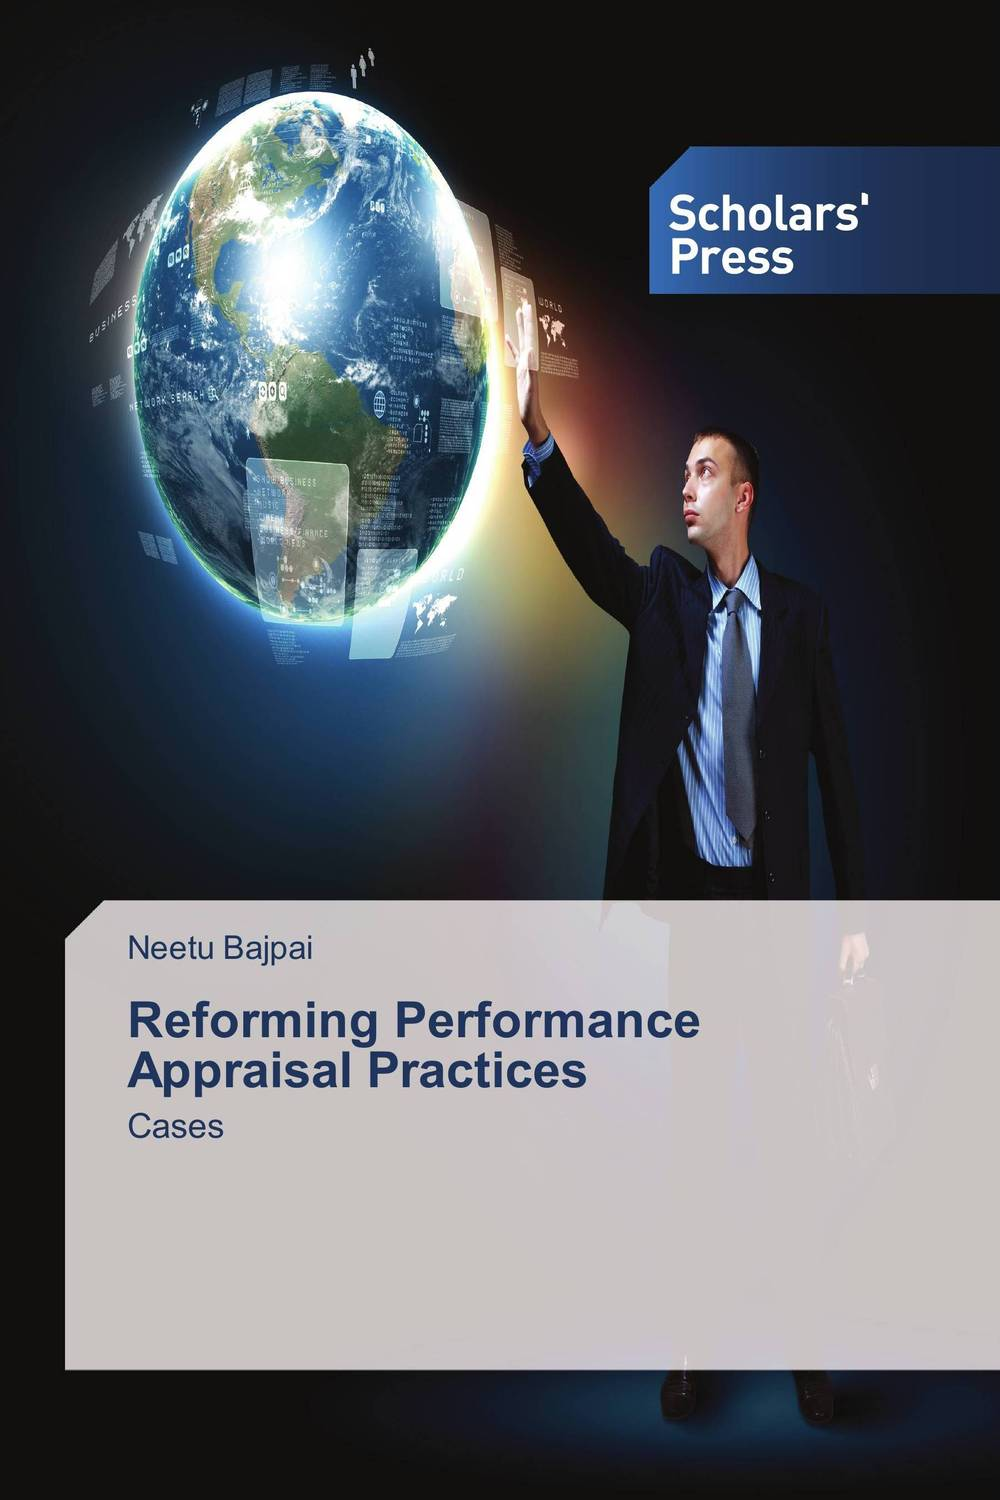 Reforming Performance Appraisal Practices performance appraisal system in the macedonian civil service